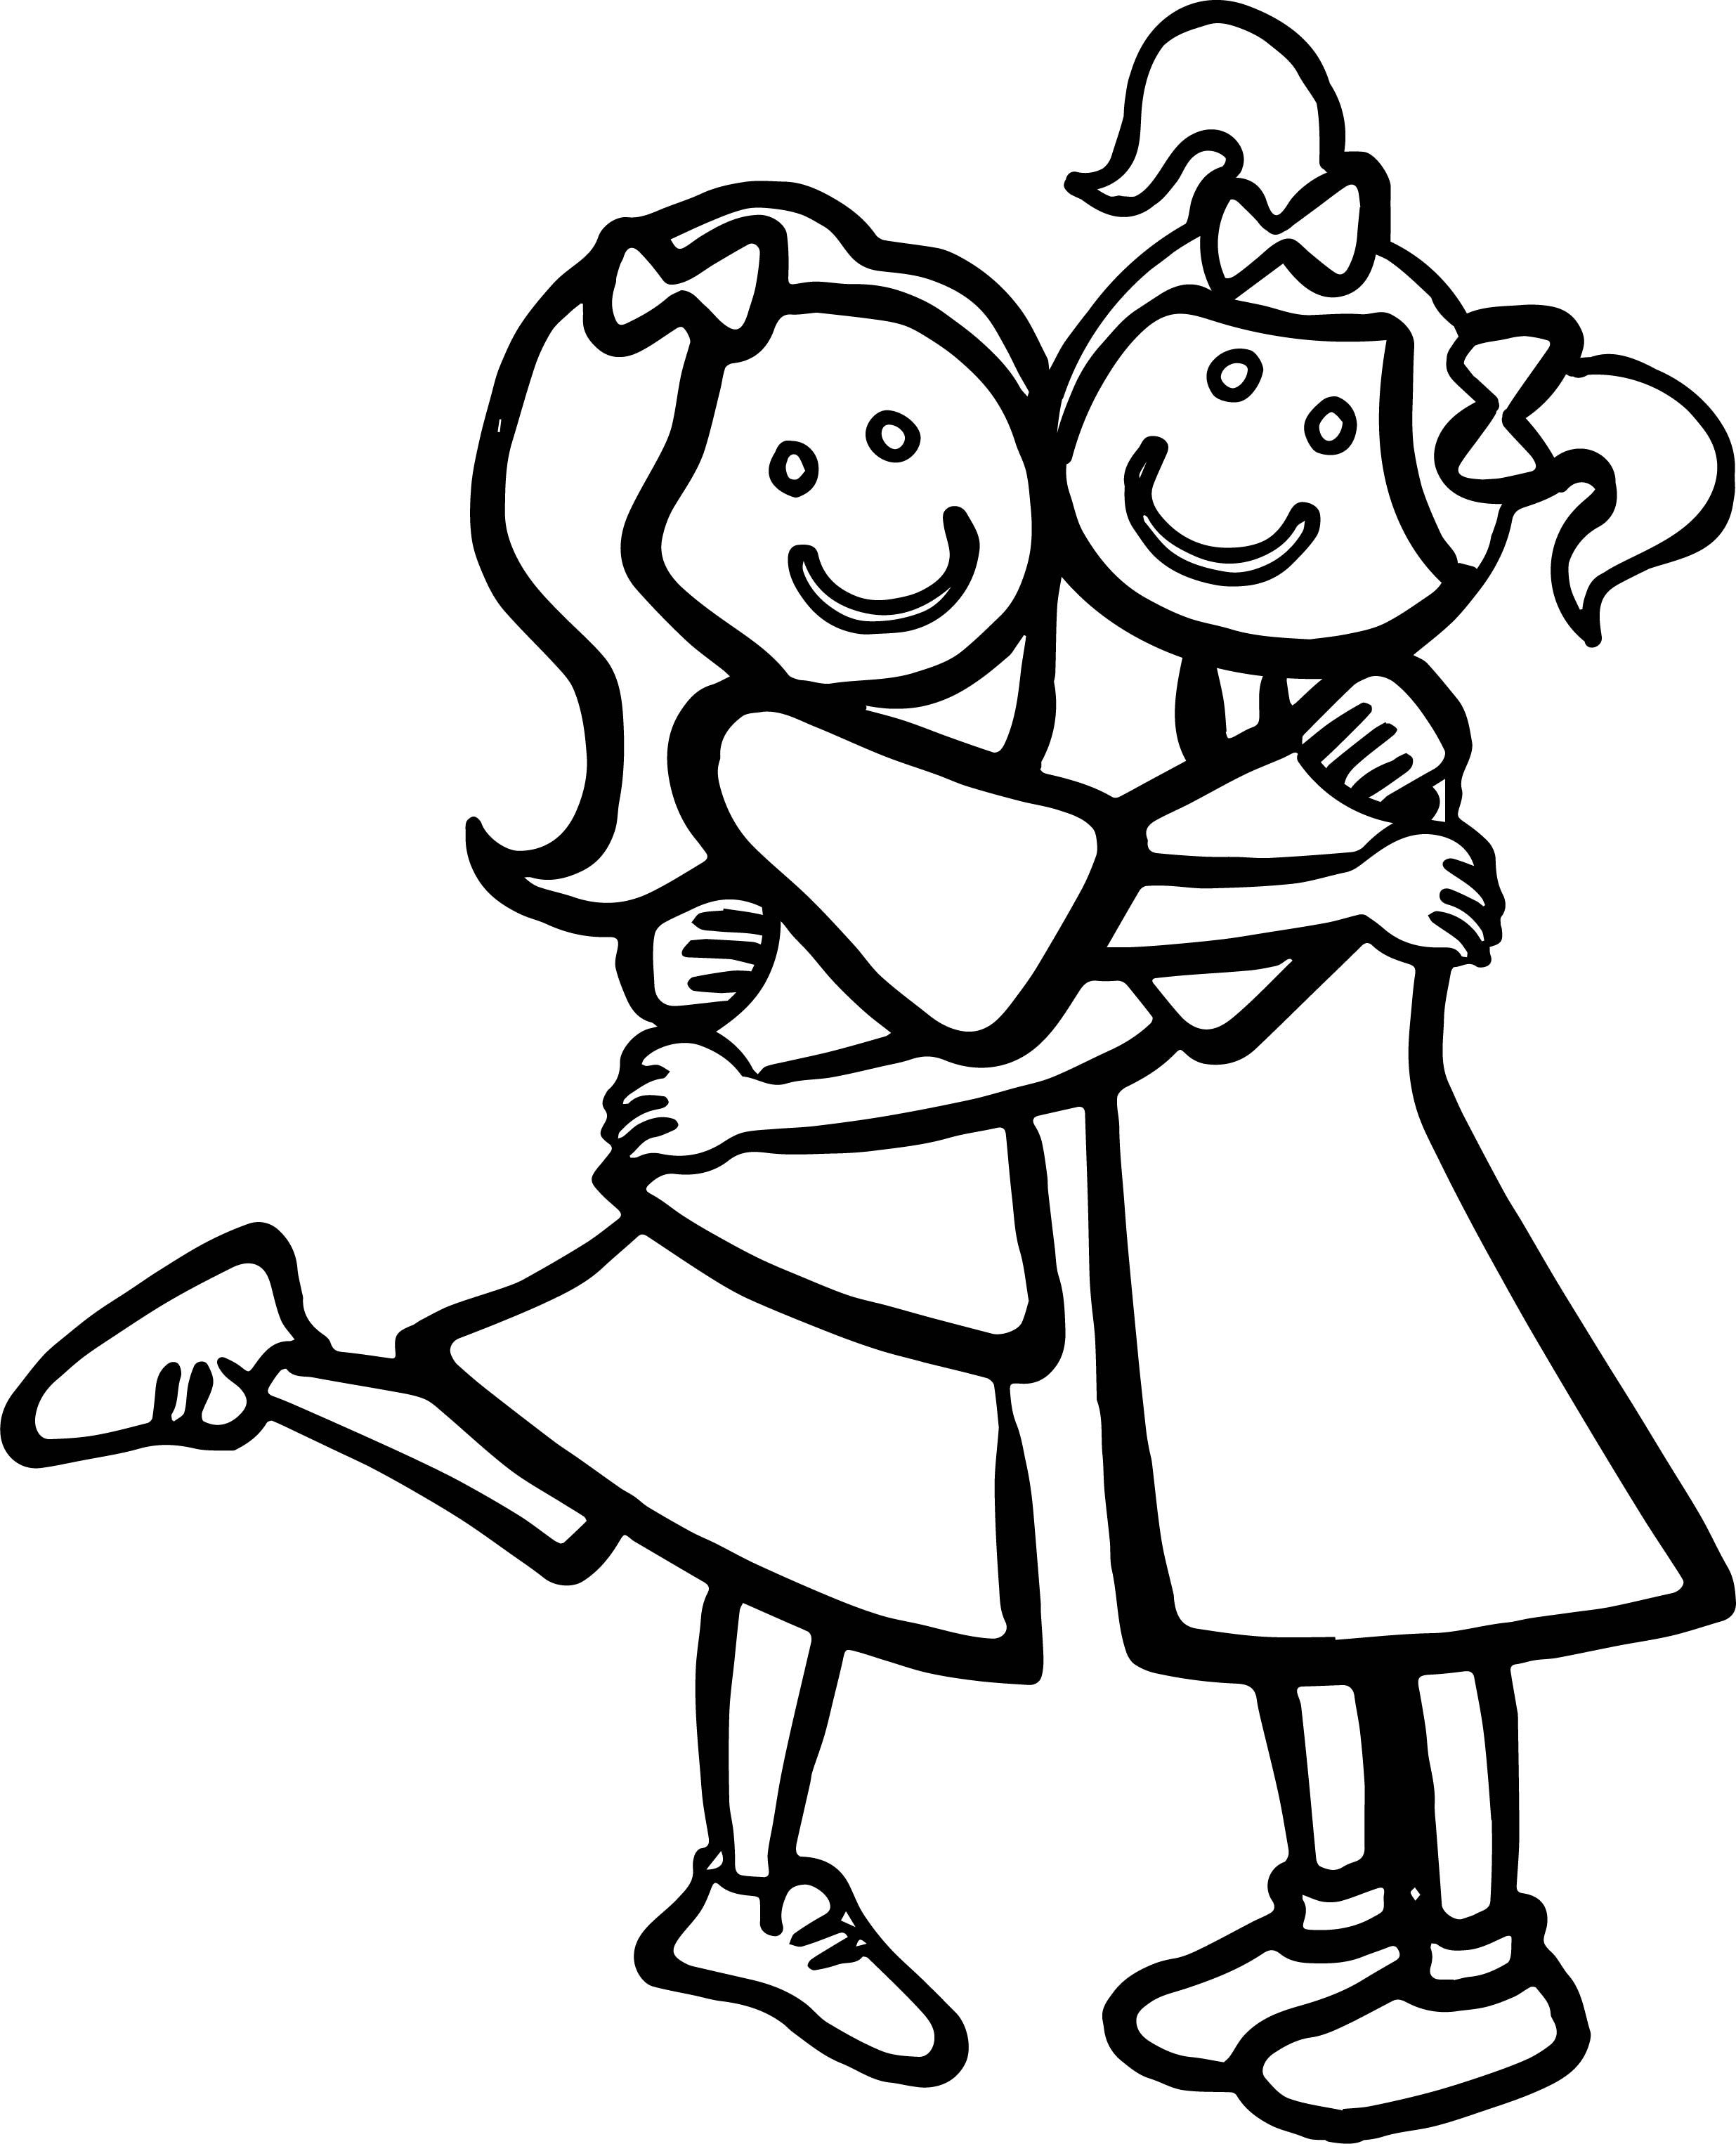 Just Girls Best Friends Coloring Page Coloring Pages For Kids Frog Coloring Pages Heart Coloring Pages